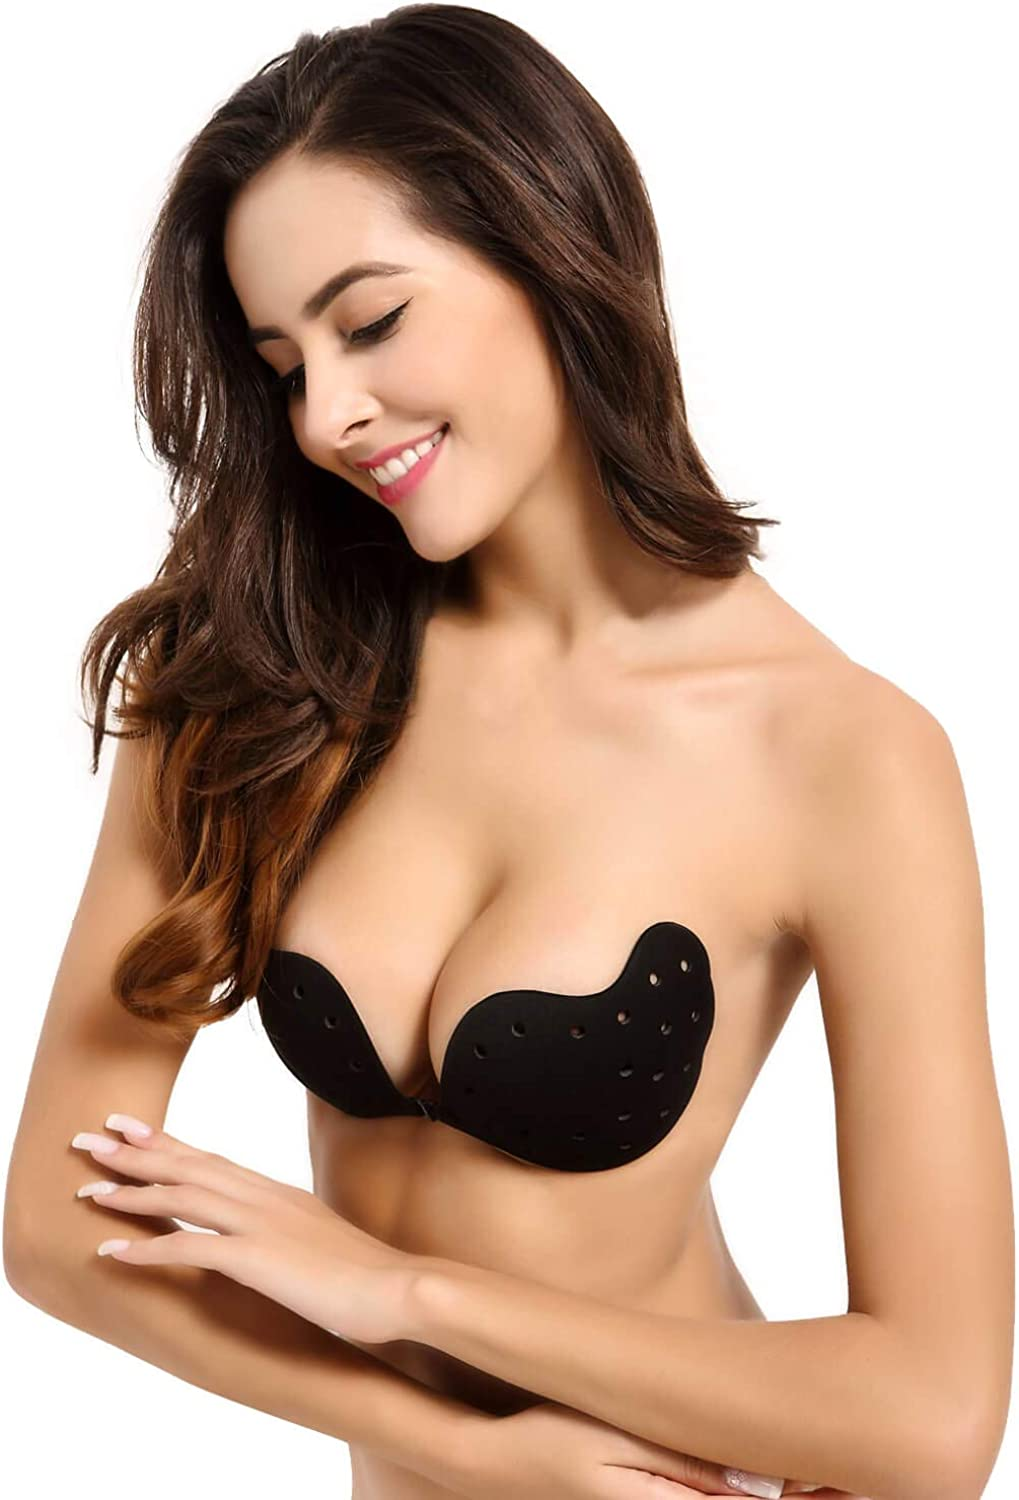 MIMEIMIAI Strapless Bra Stick On Bra Invisible Push Up Backless Sticky Adhesive Bras Reusable for Women with Nipple Covers